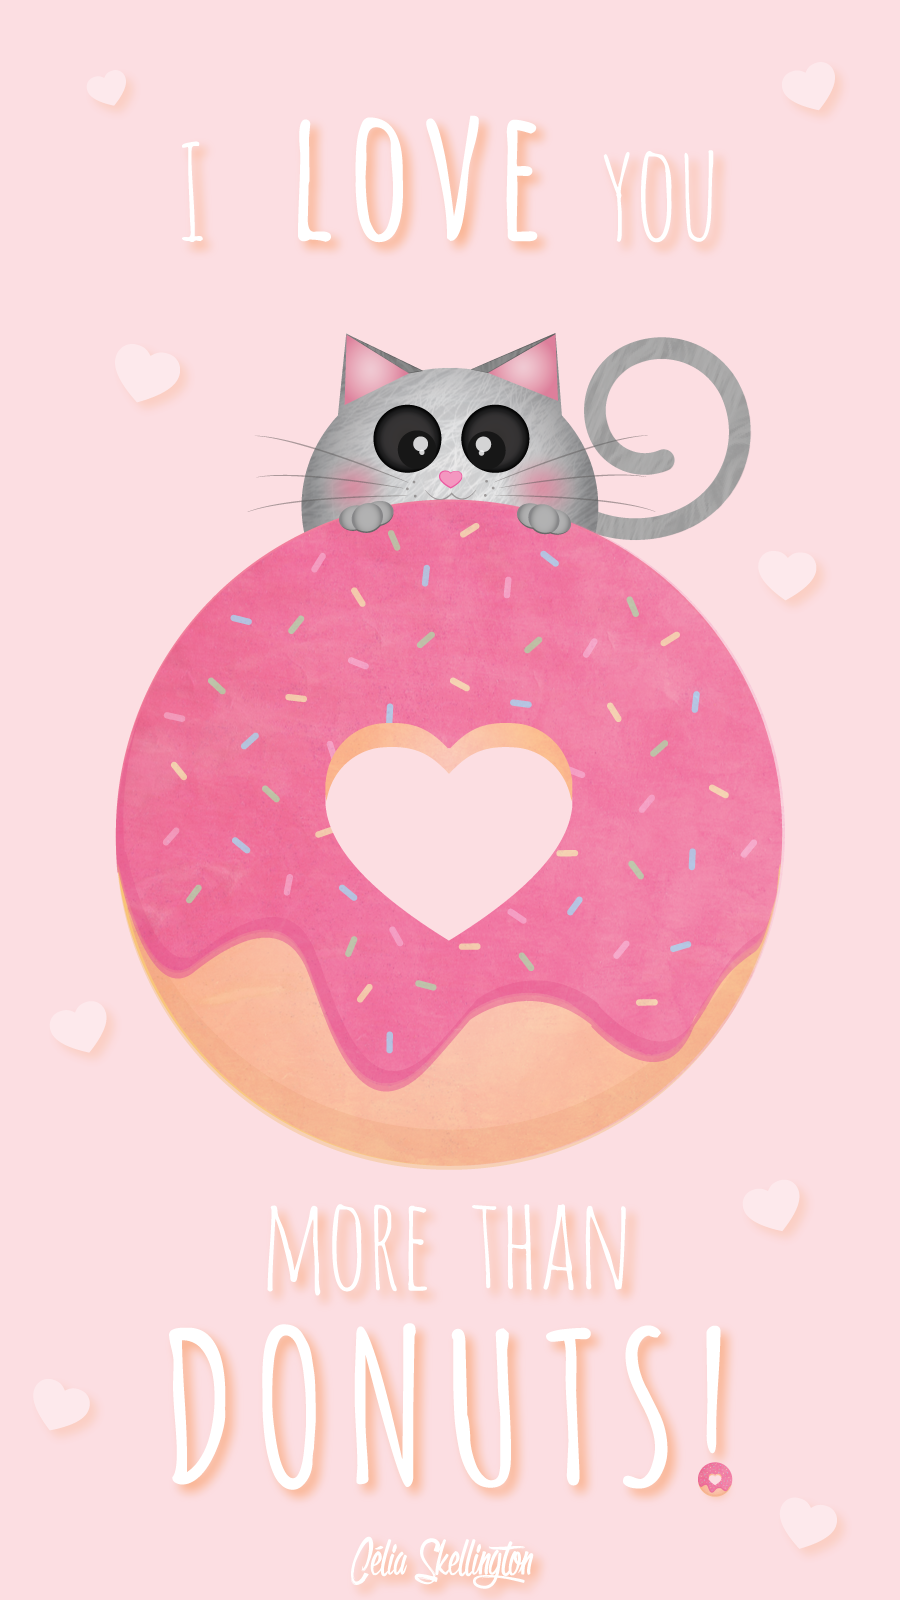 Simple Wallpaper Hello Kitty Donut - f2739cd5207794fe8820797e82b9970d  Perfect Image Reference_347517.png